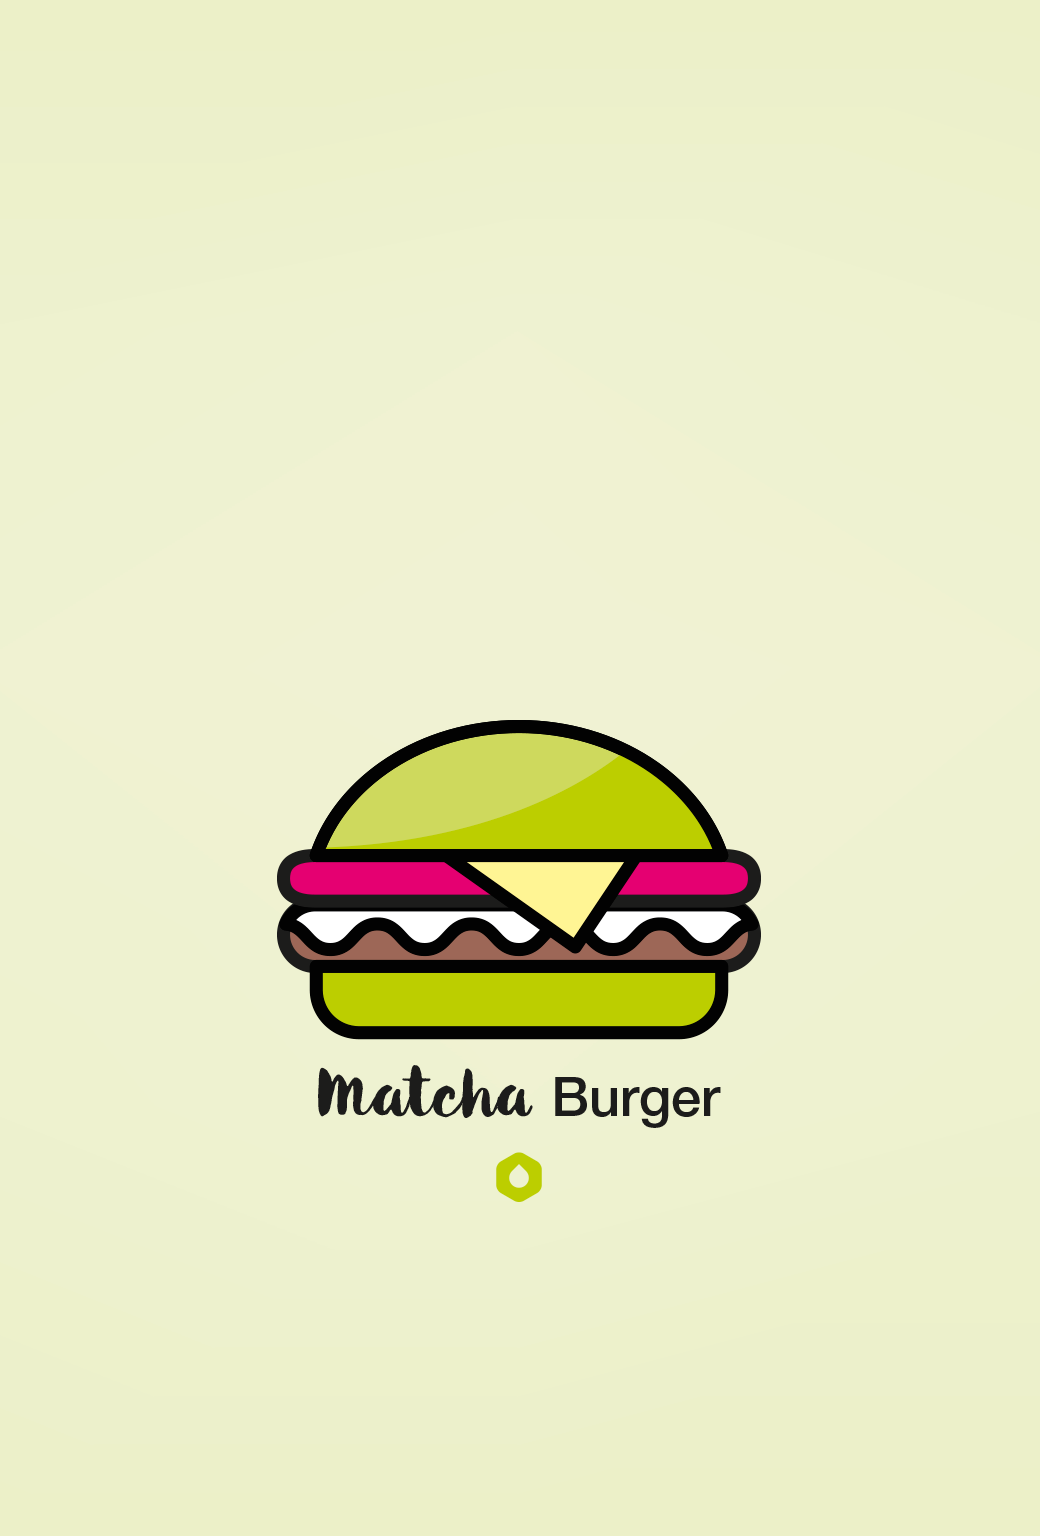 Wallpaper Pick Your Burger - iPhone5 - Matcha